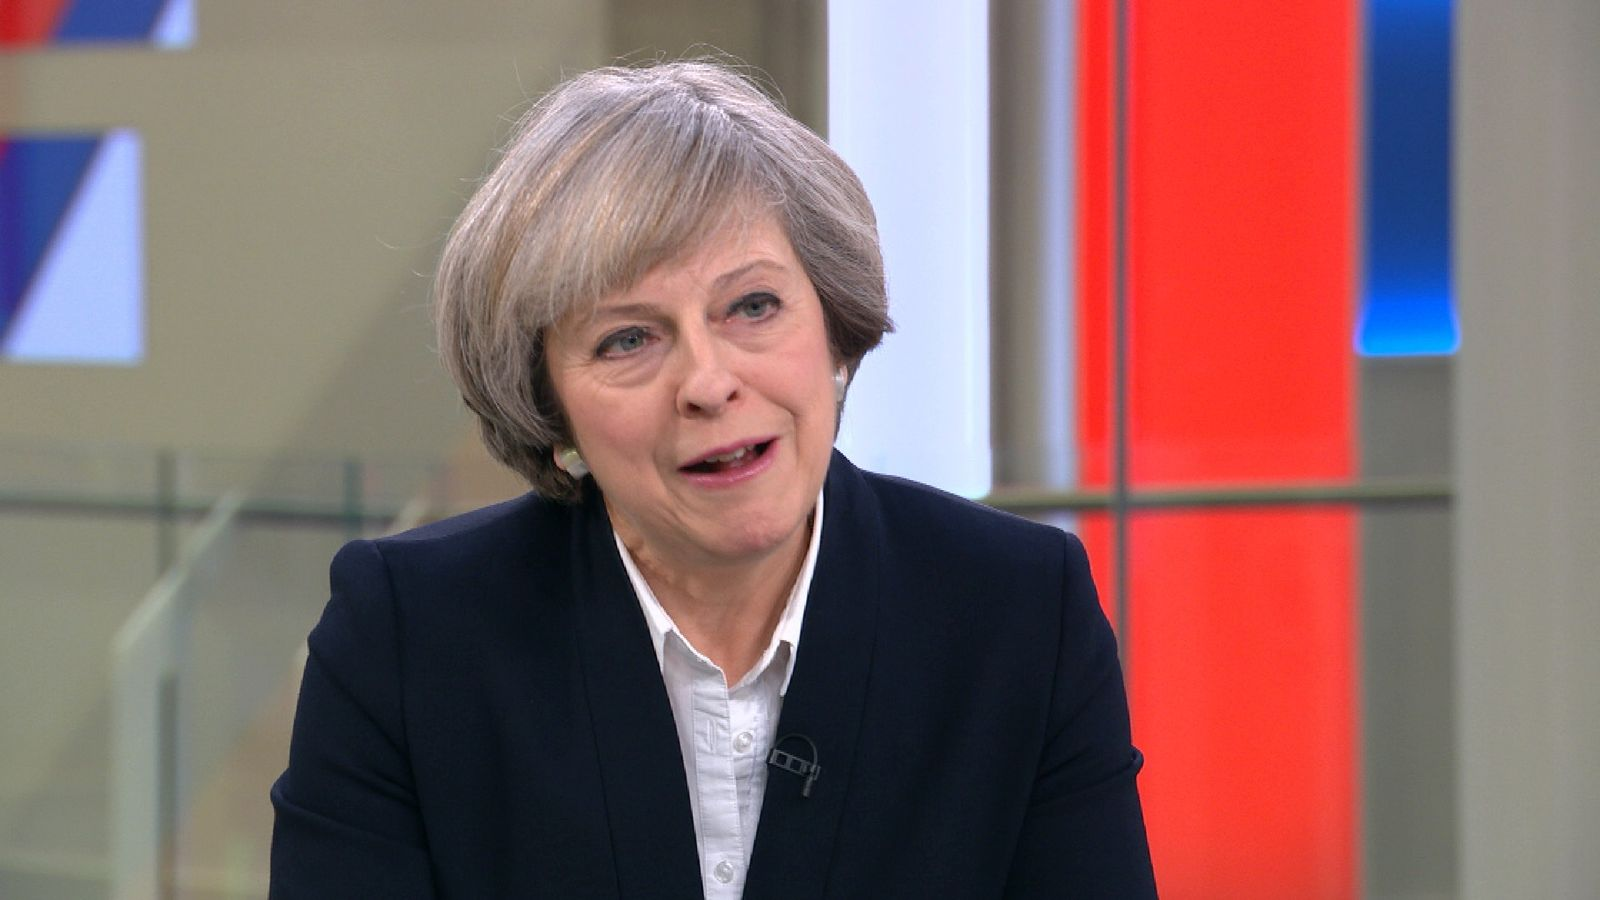 Theresa May: 'I don't accept Red Cross description of NHS'